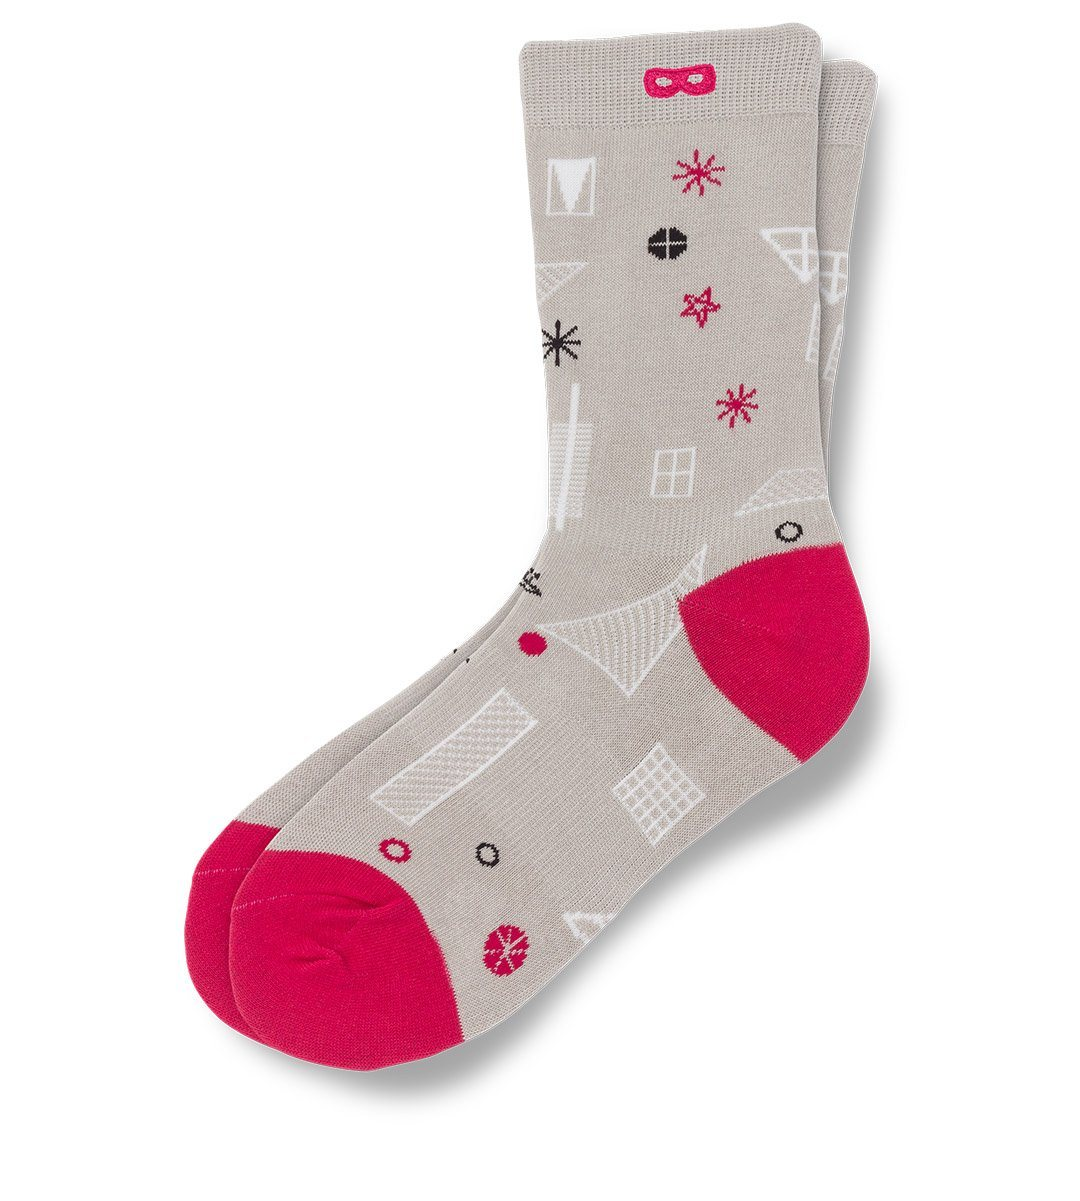 Soup To Nuts Women's Crew Socks